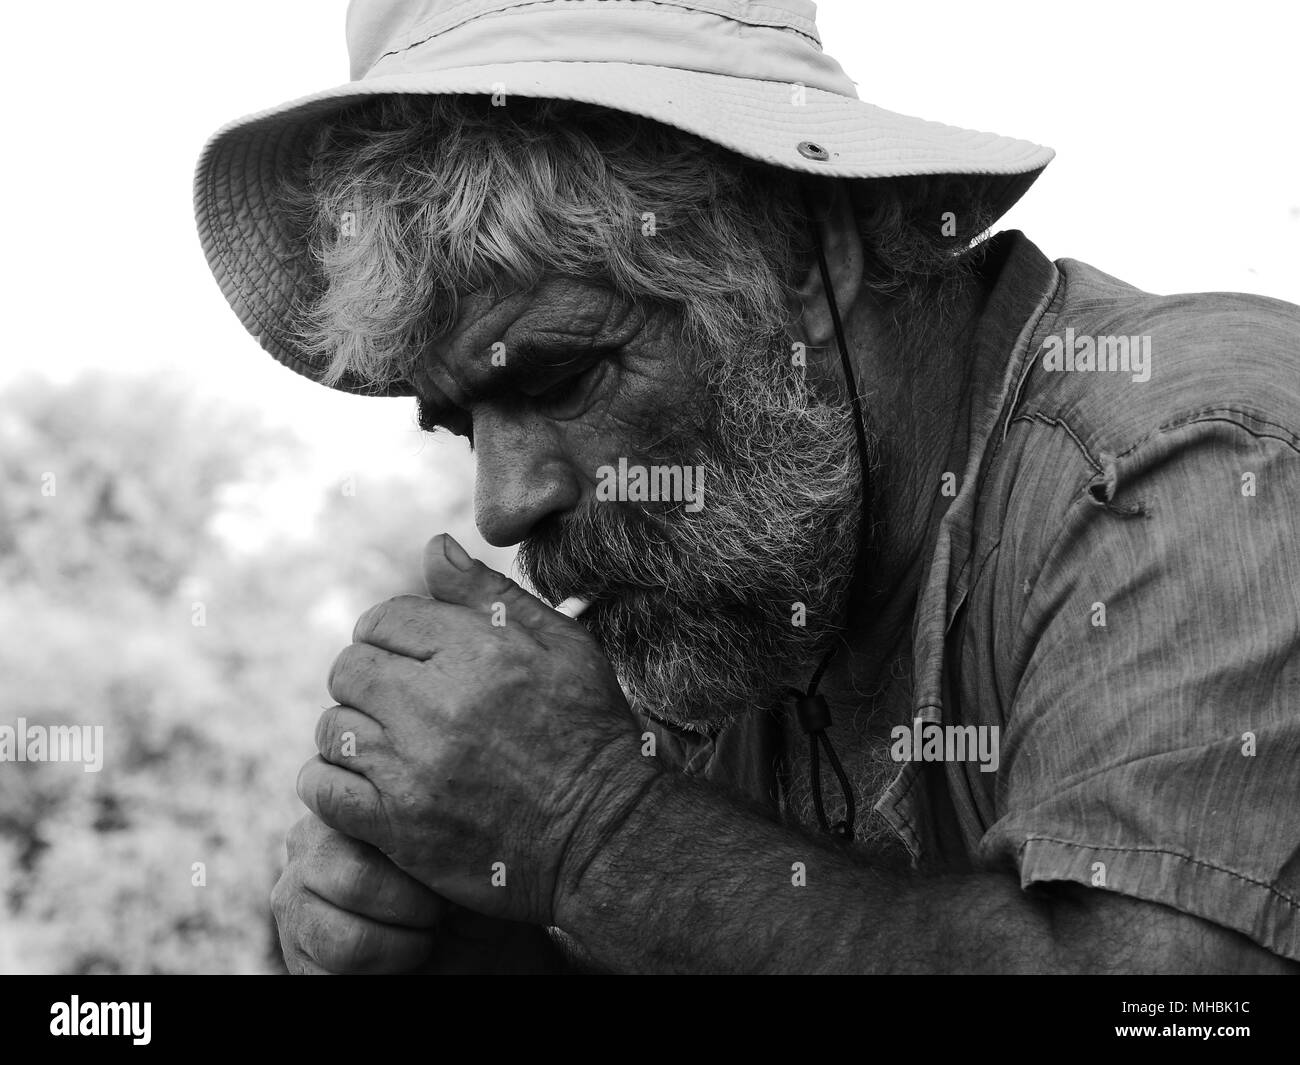 Old Man White Beard Smoking Stock Photos Old Man White